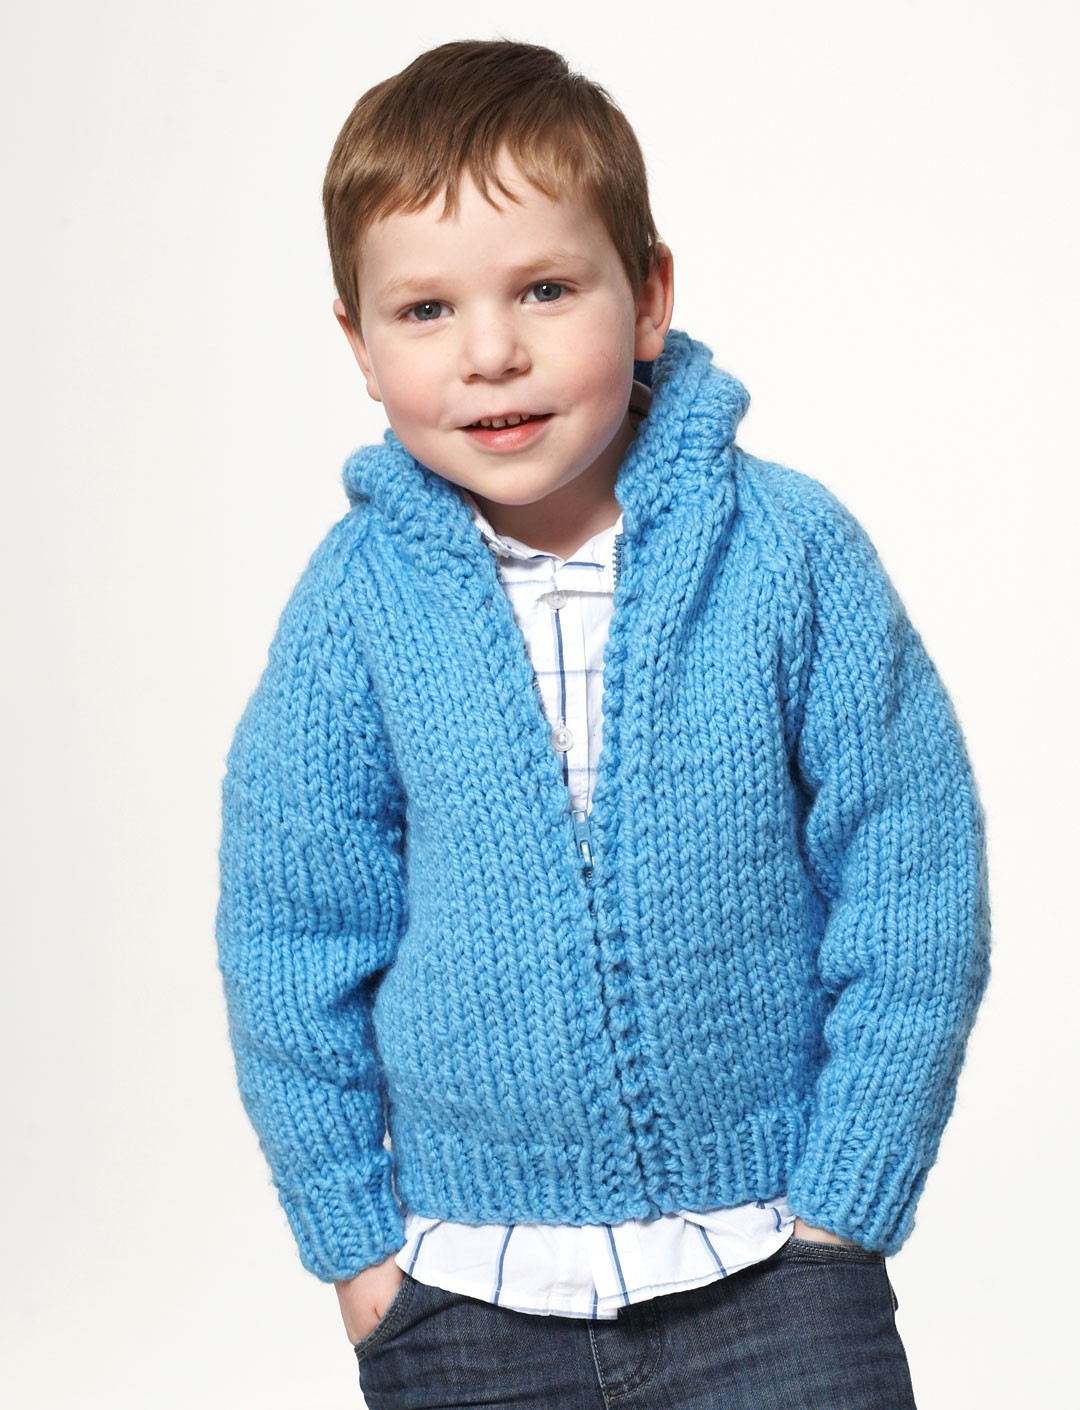 Knitting Pattern Hoodie Child : Bernat Kids Jacket, Knit Pattern Yarnspirations